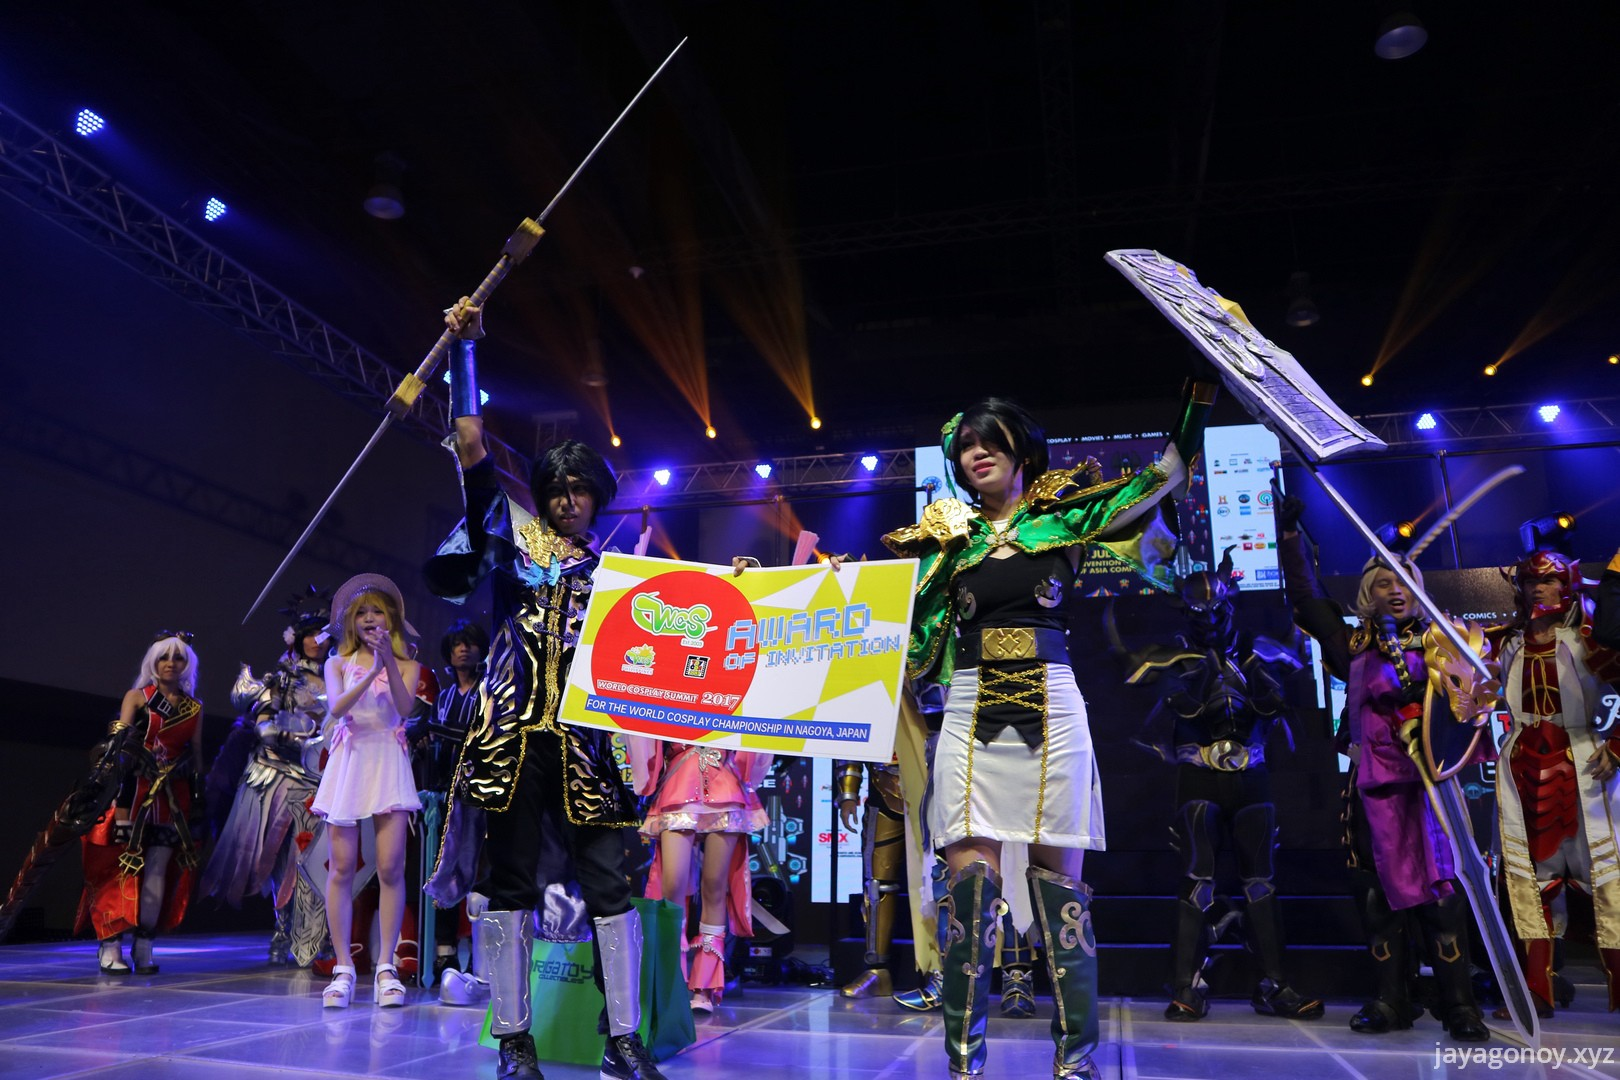 What it's like to hold a World Cosplay Summit qualifier in Zamboanga?